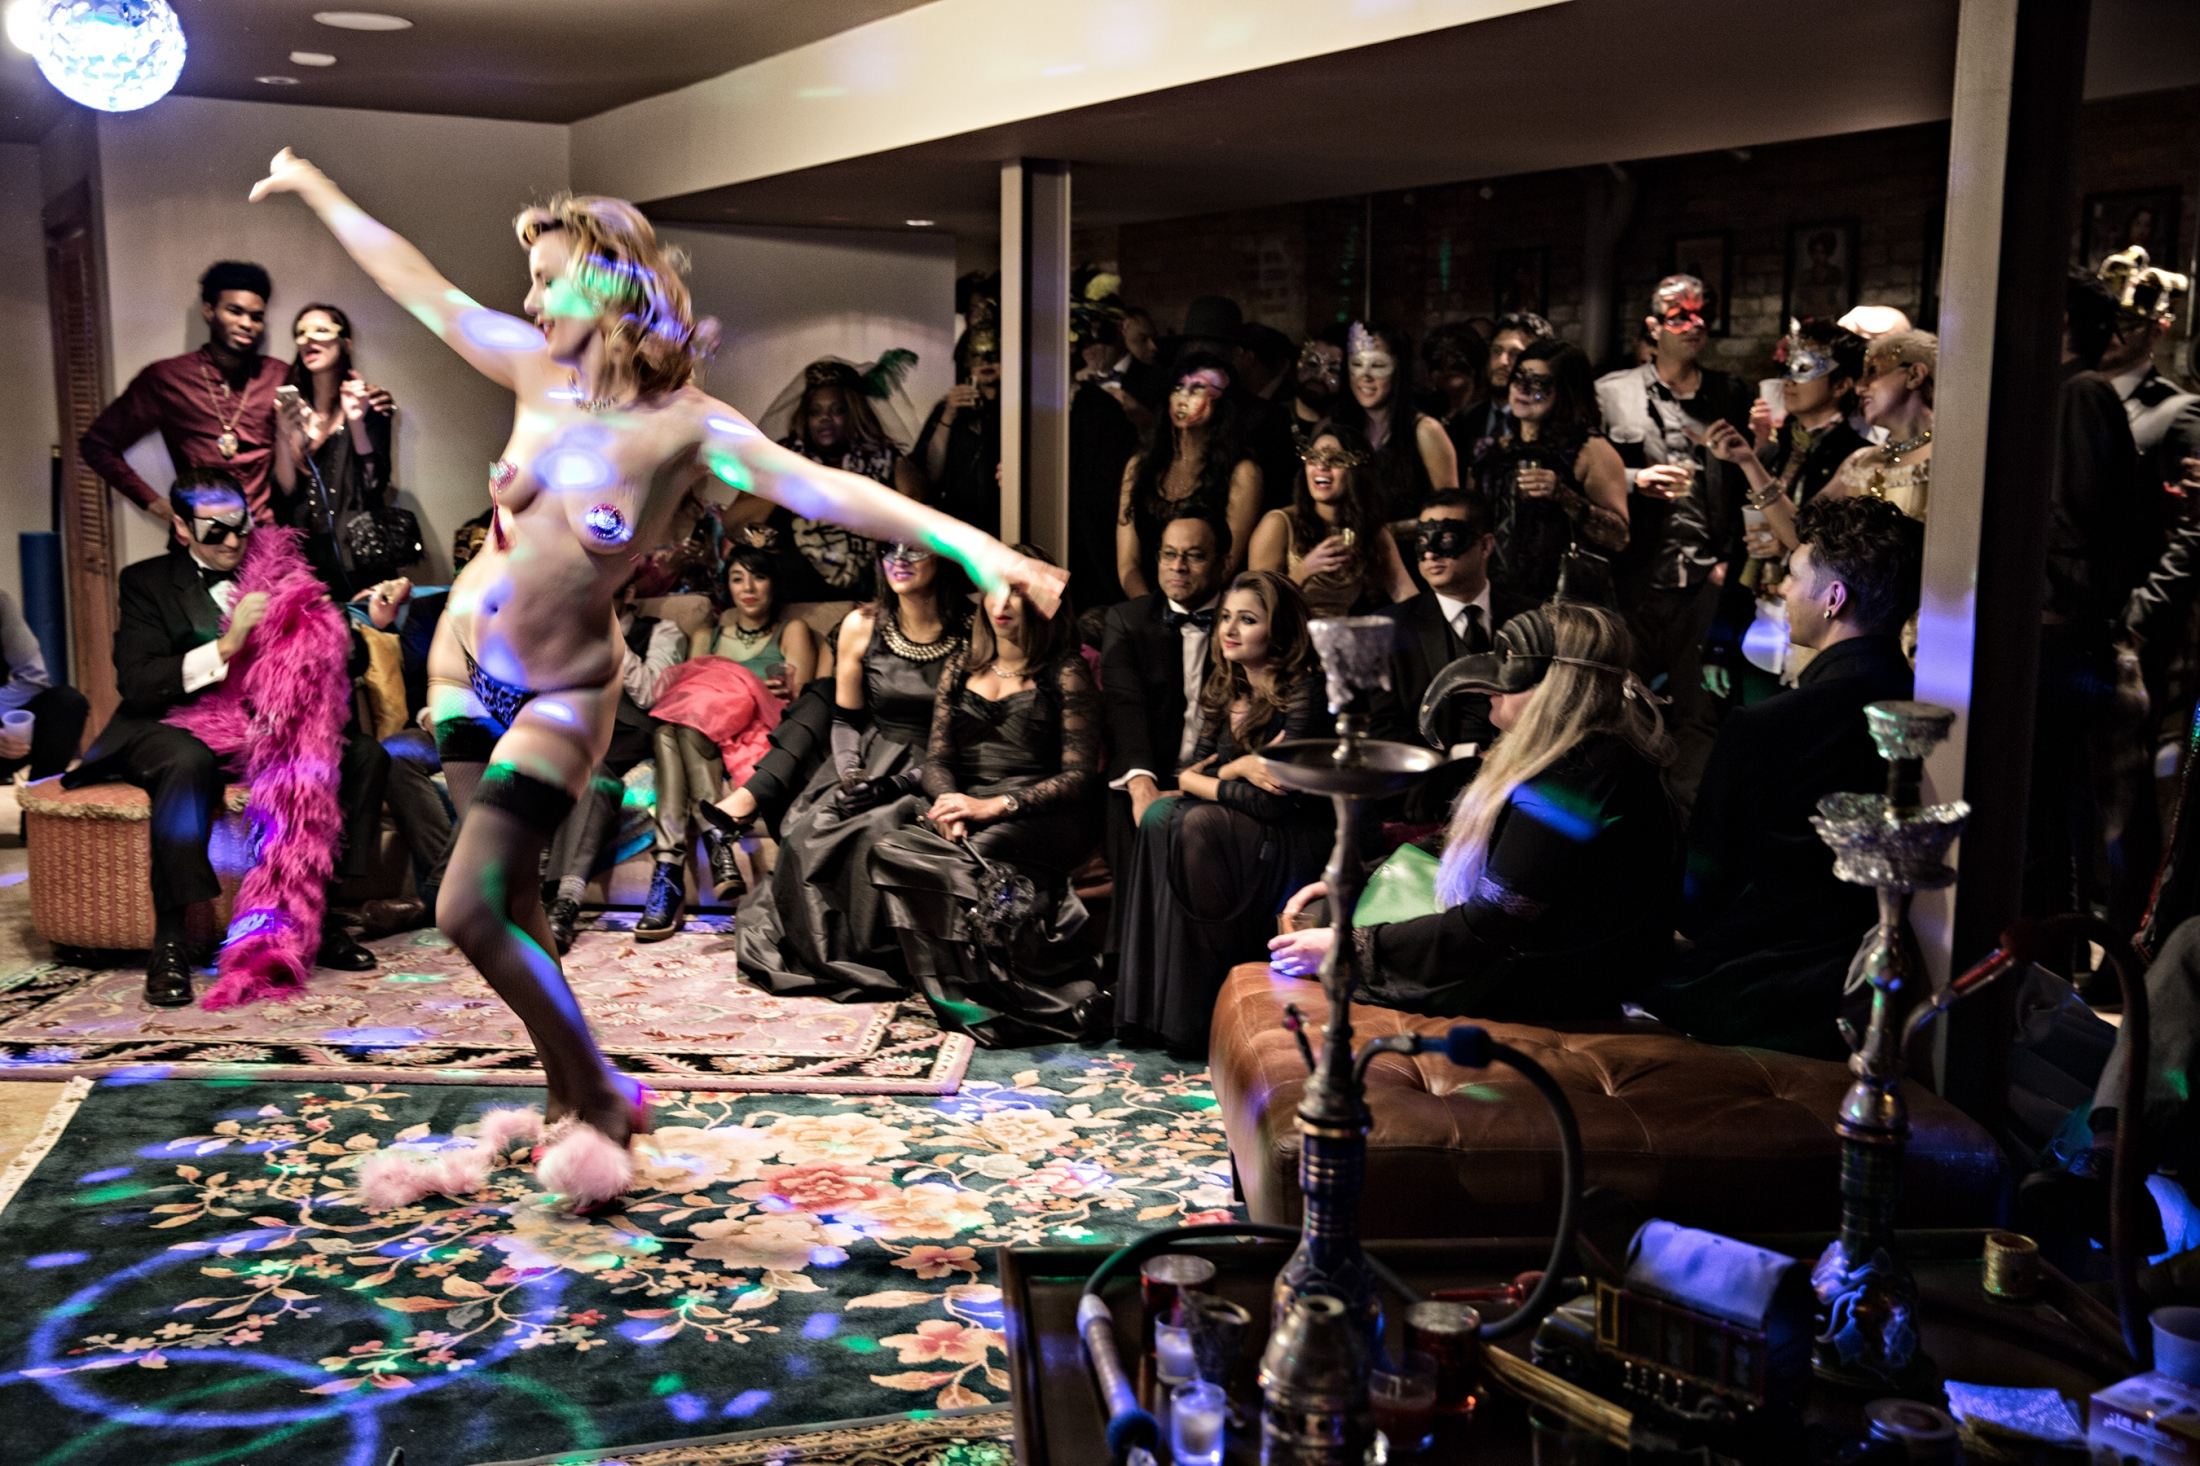 Red Hot Annie performs her act in front of an audience at a private residence during a New Year's Eve party. In addition to regular stage performances, Vaudezilla members are often booked for private celebrations.